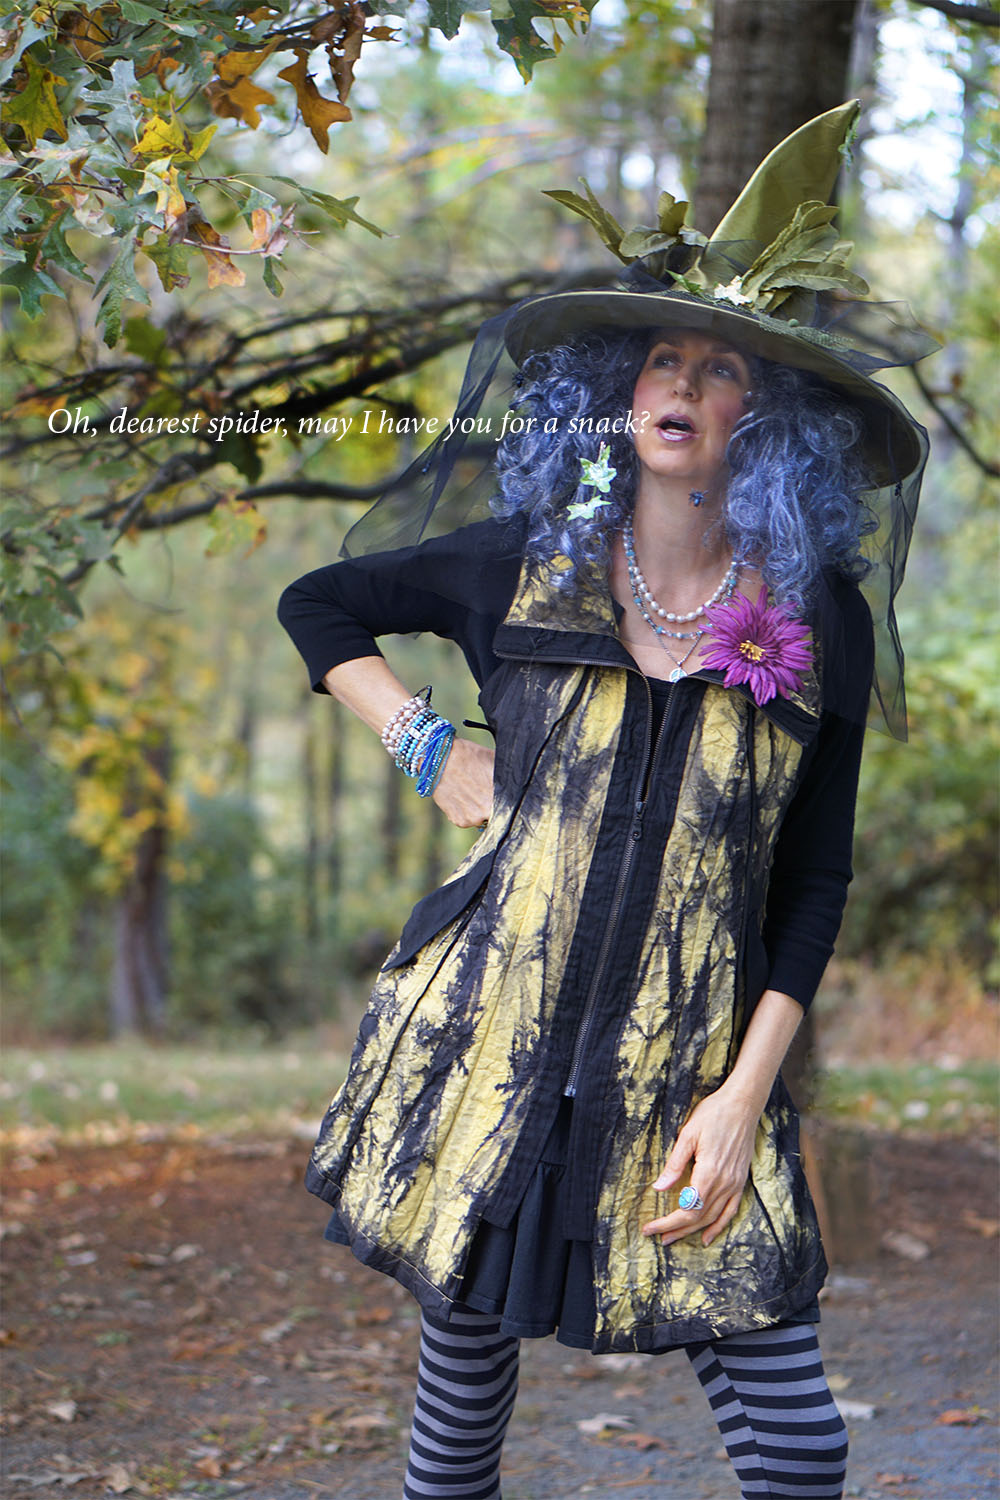 Photo by Alison Walden, Hat from local Halloween pop-up shop, Jacket from Glad Rags Consignment  http://www.mygladrags.com